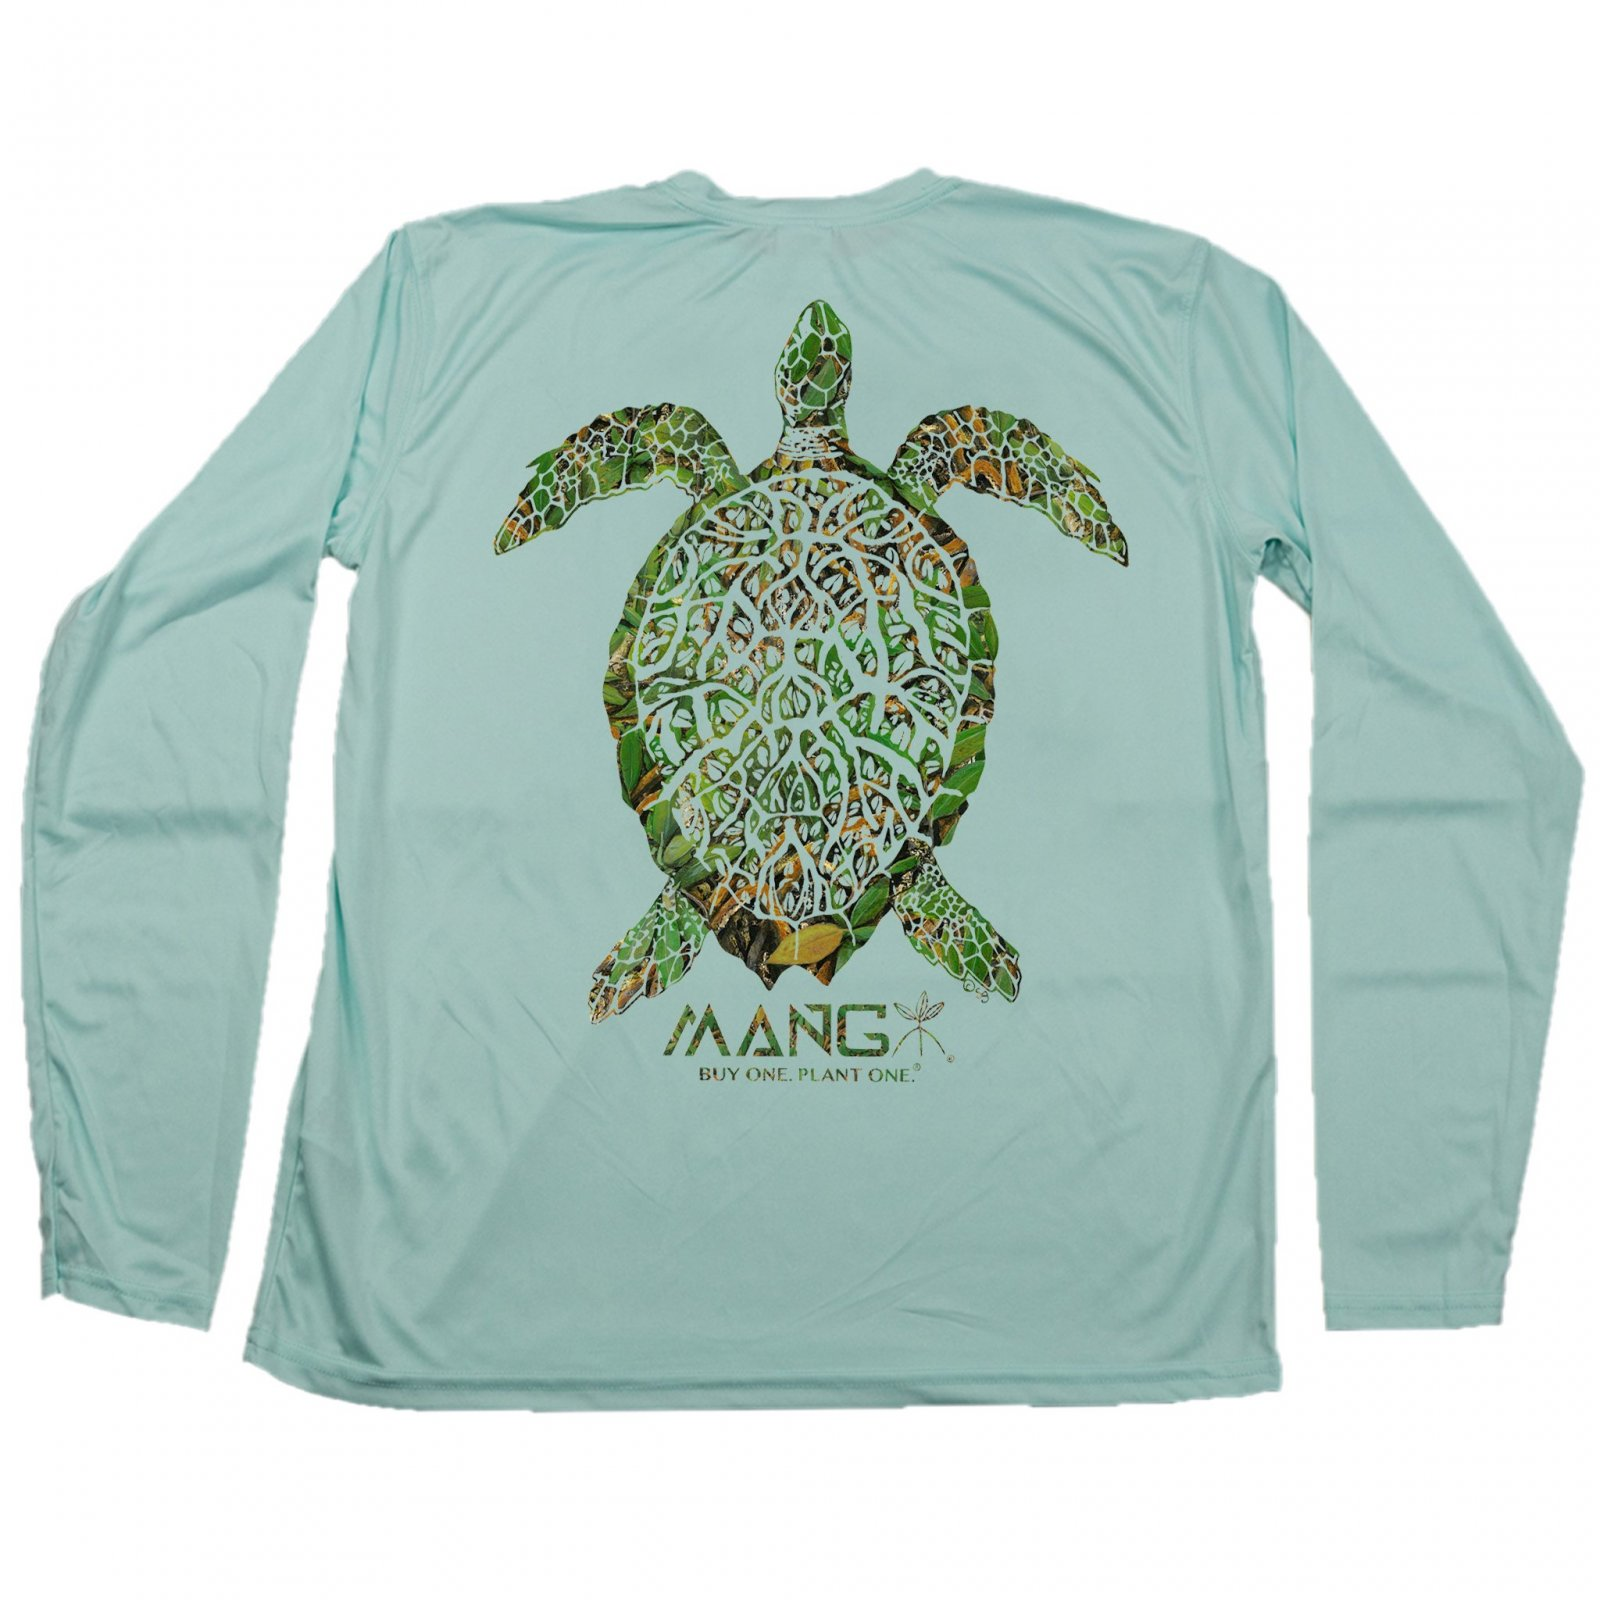 MANG Grassy Turtle L/S - Seagrass